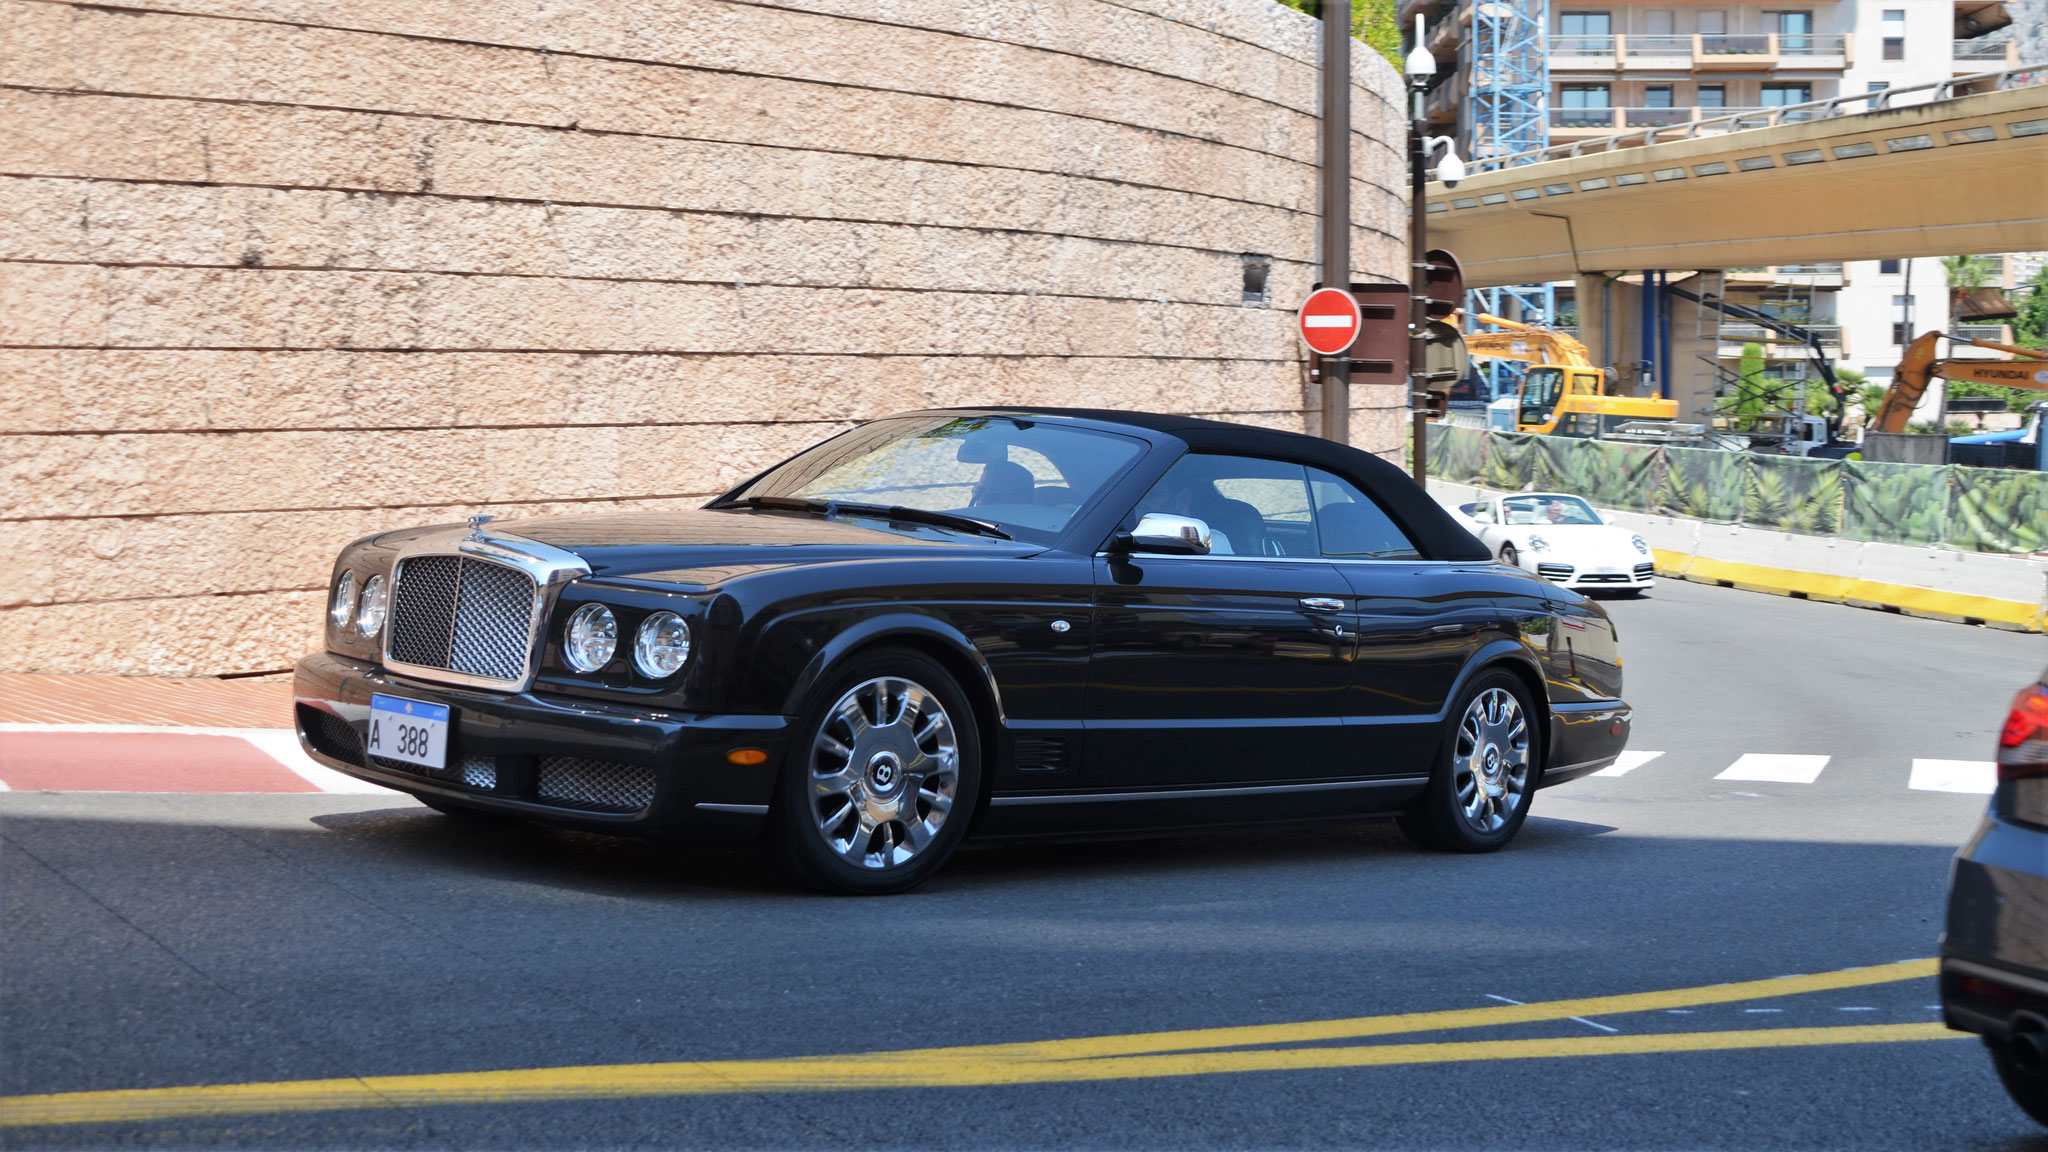 Bentley Azure - A-388 (Arab)